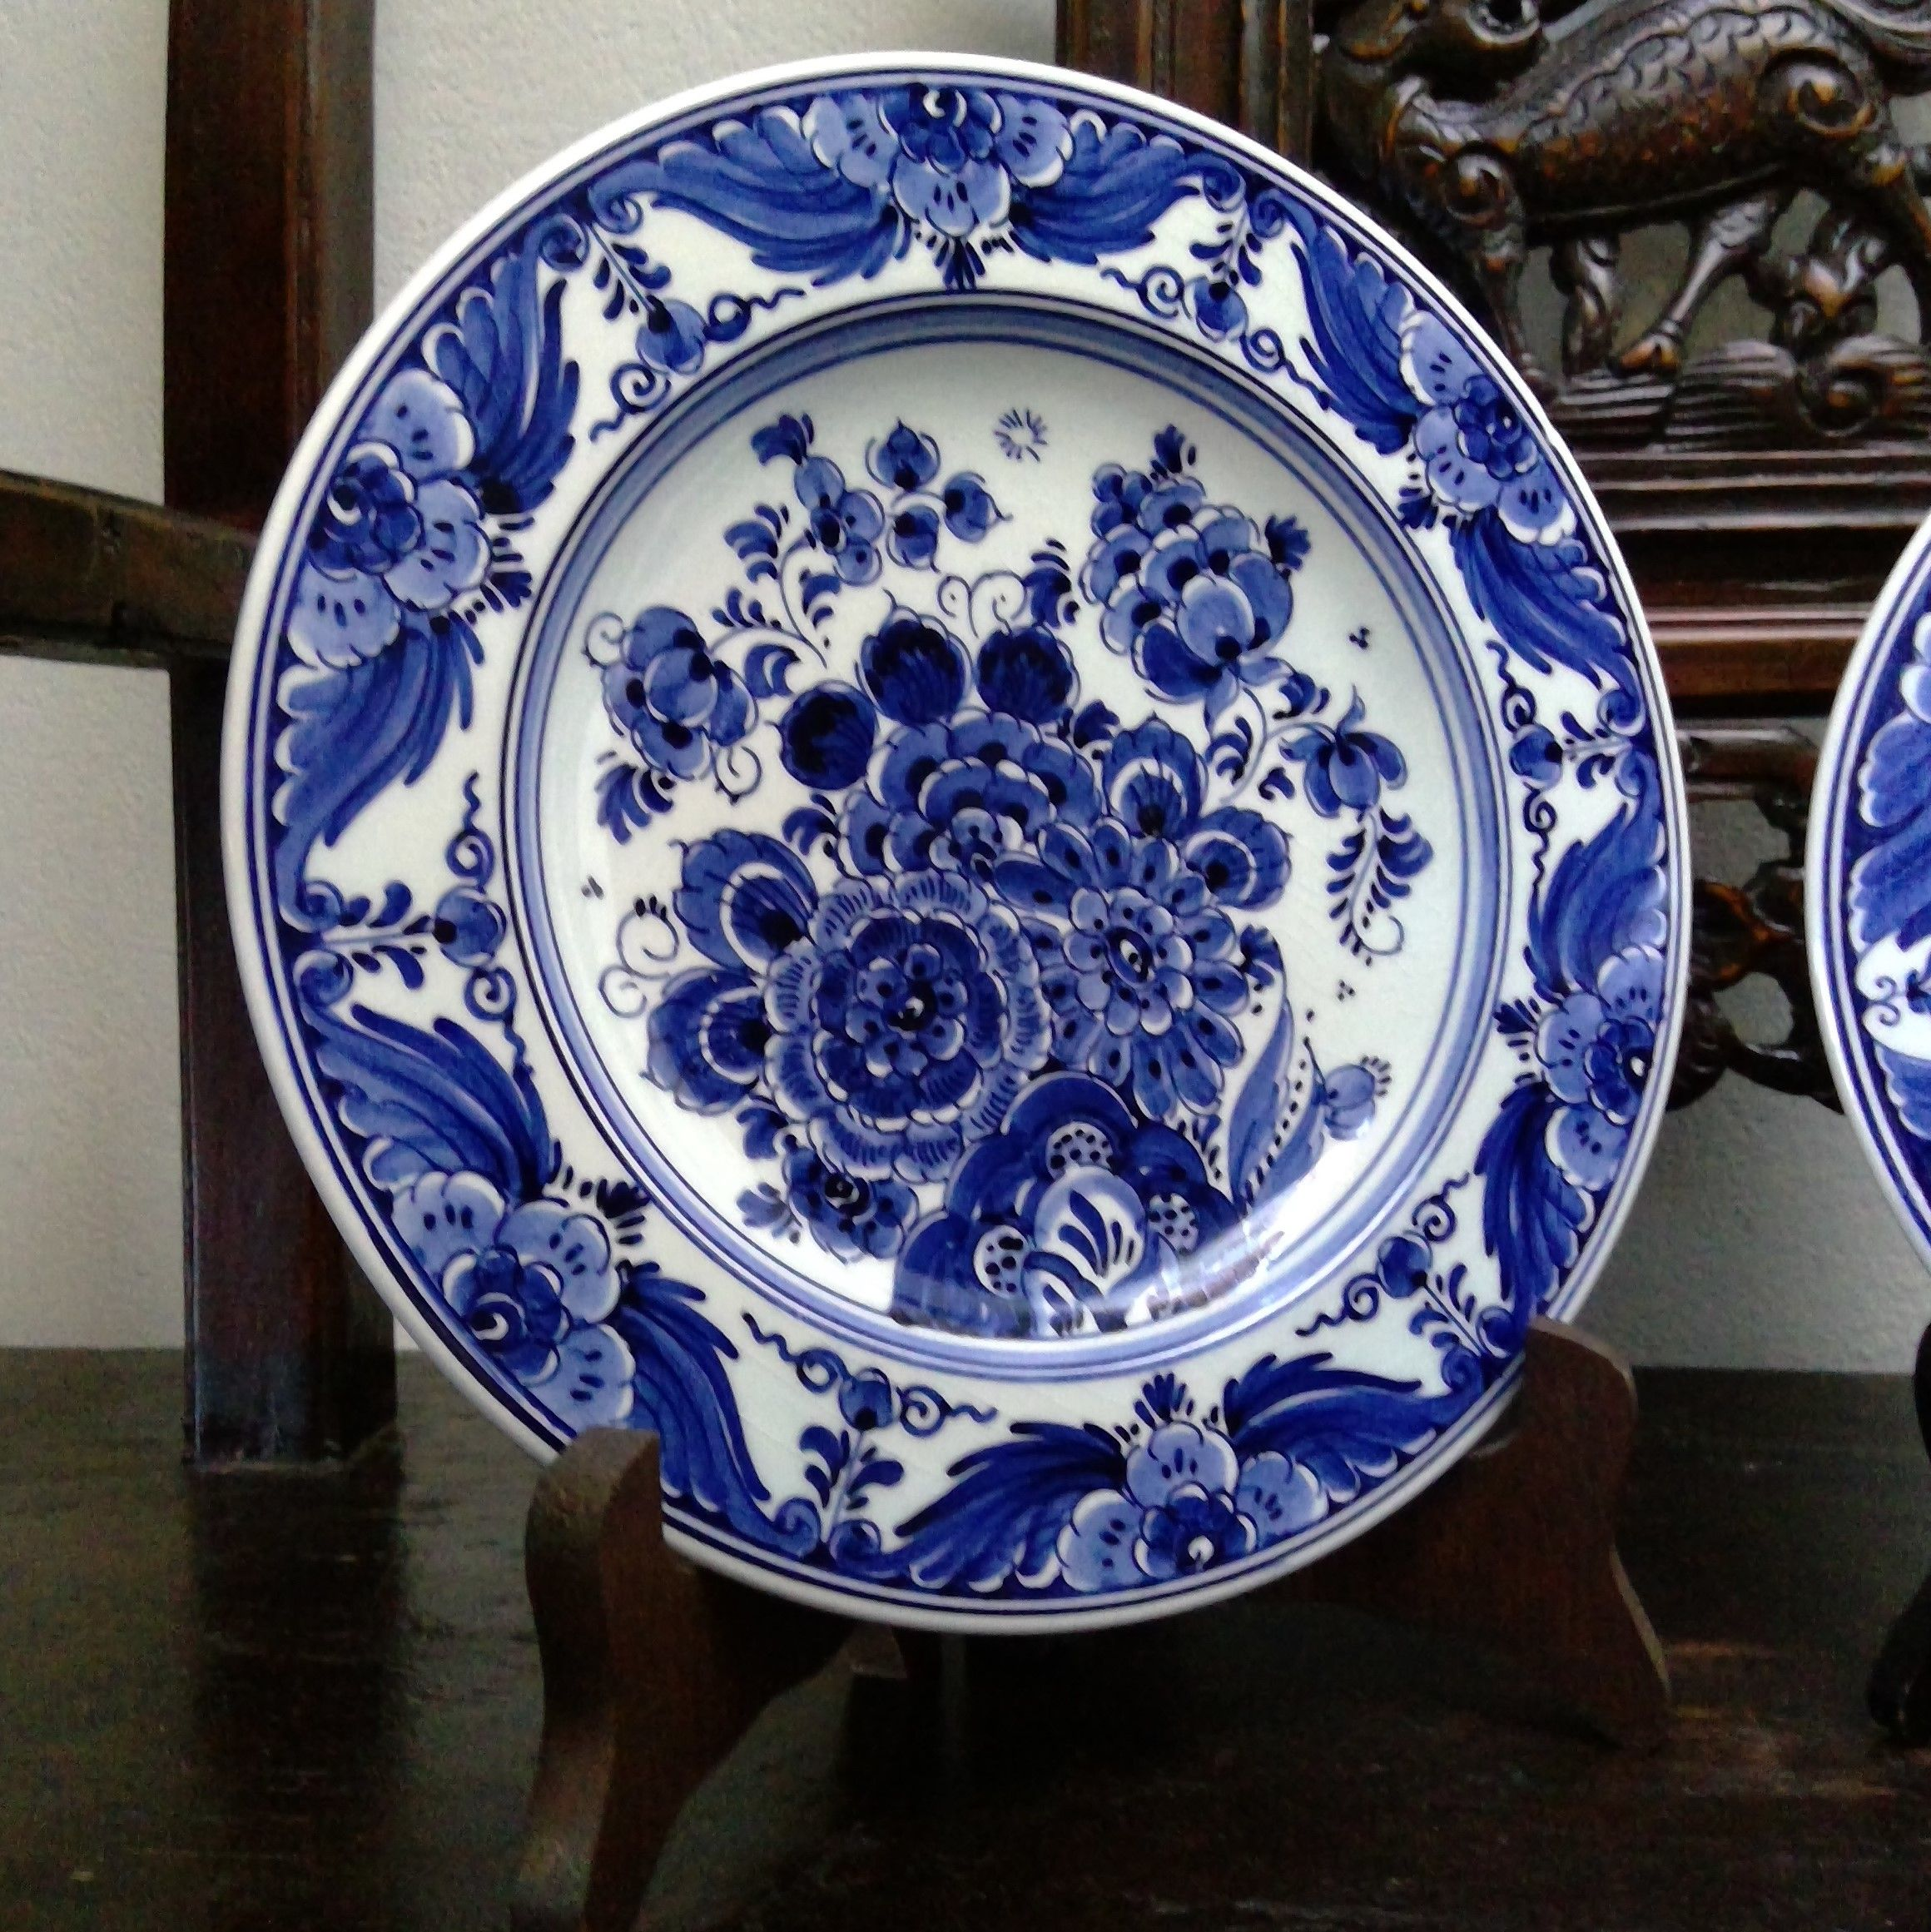 2 Vintage Delft Blue Wall Plates By Velsen Sassenheim Etsy In 2020 Pottery Art Blue And White China Blue And White